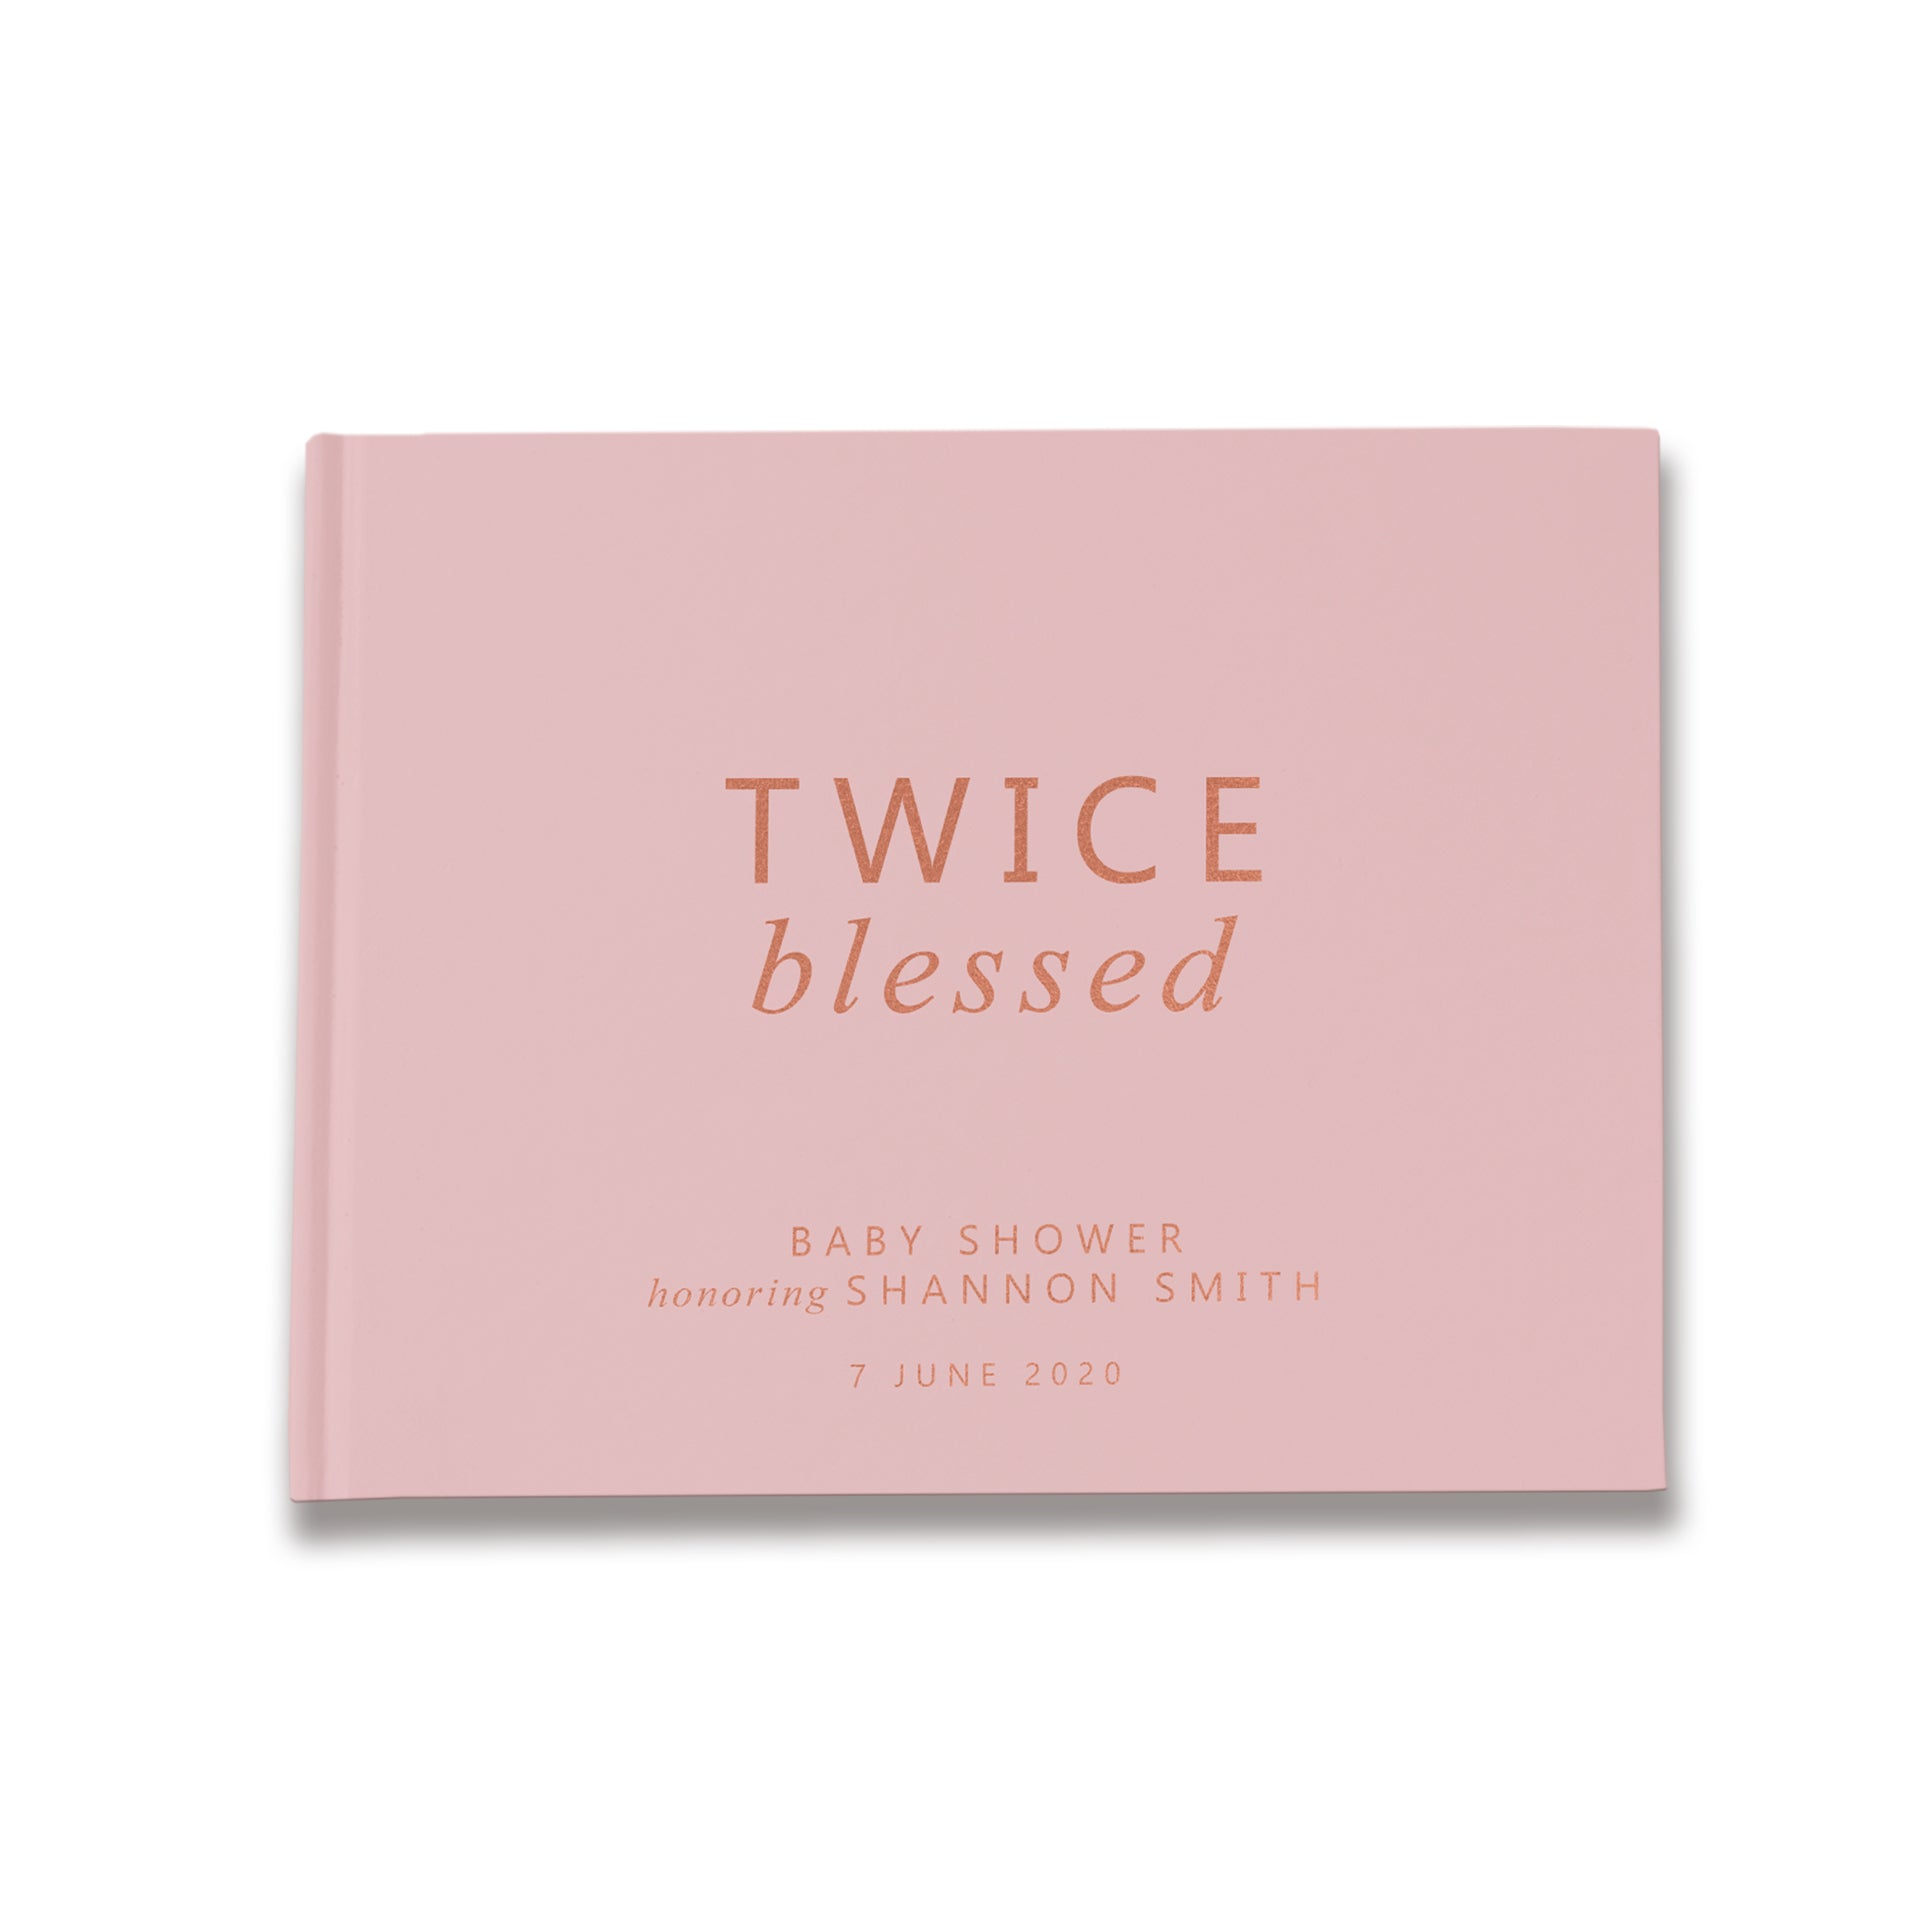 Twin Twice Blessed | Dusty Pink & Rose Gold Baby Shower Guest Book